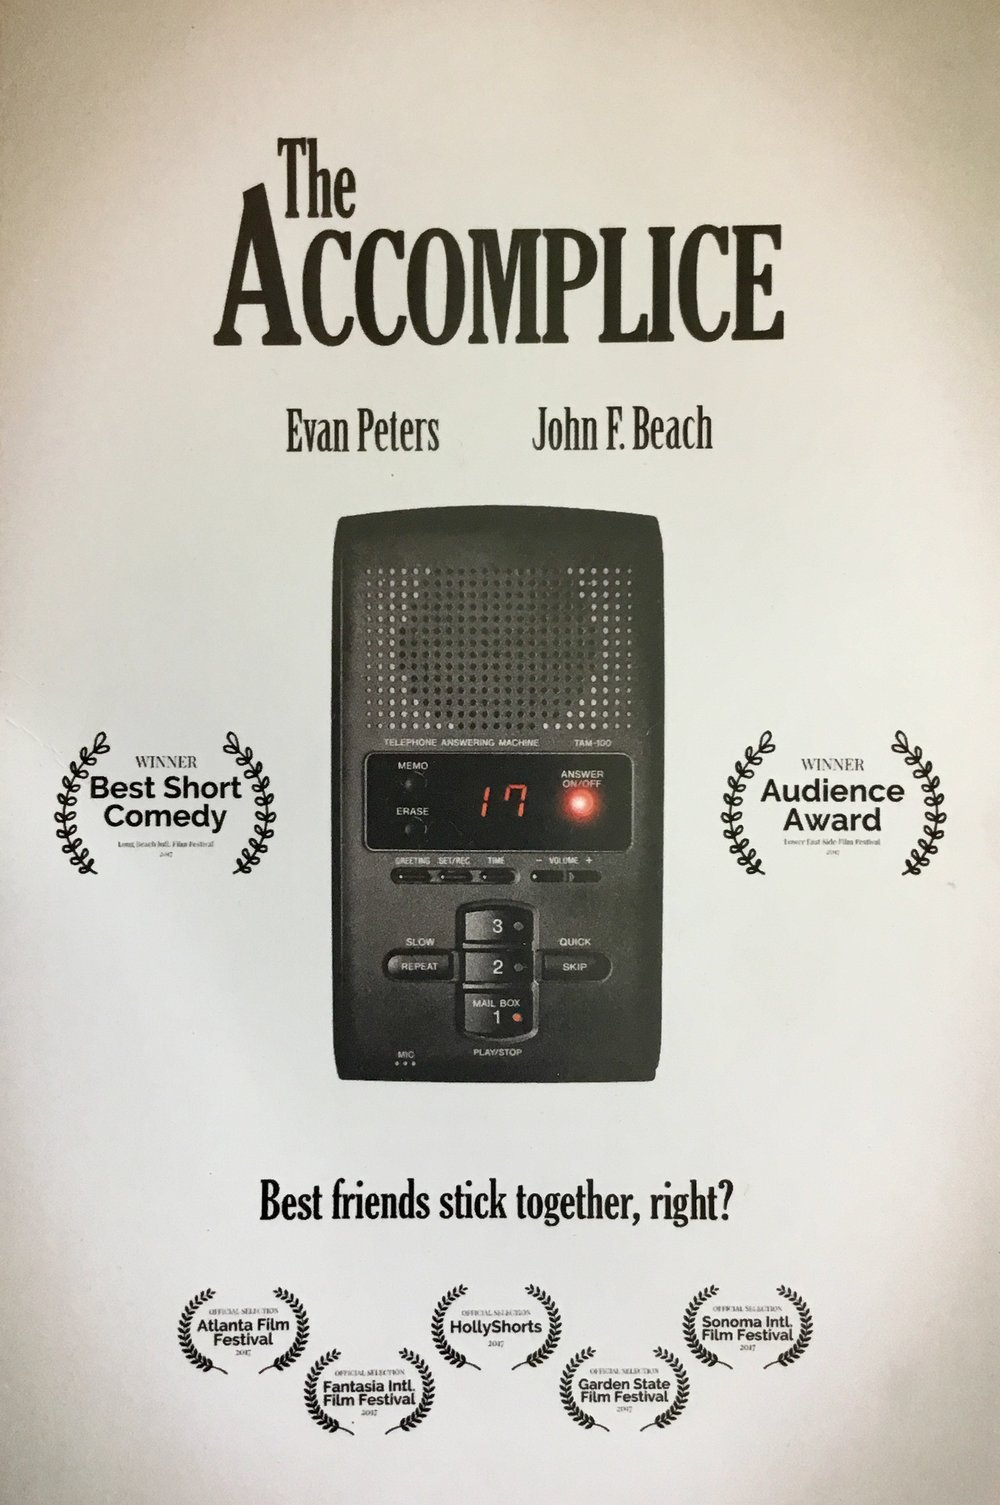 """The Accomplice"" - Dark Comedy short - (dir.) John Hoegg. Sound Design, Audio Post-Production, Location Sound, & Score by Jack Goodman. Arriving home from a long business trip, Jerry discovers a number of urgent messages on his answering machine."